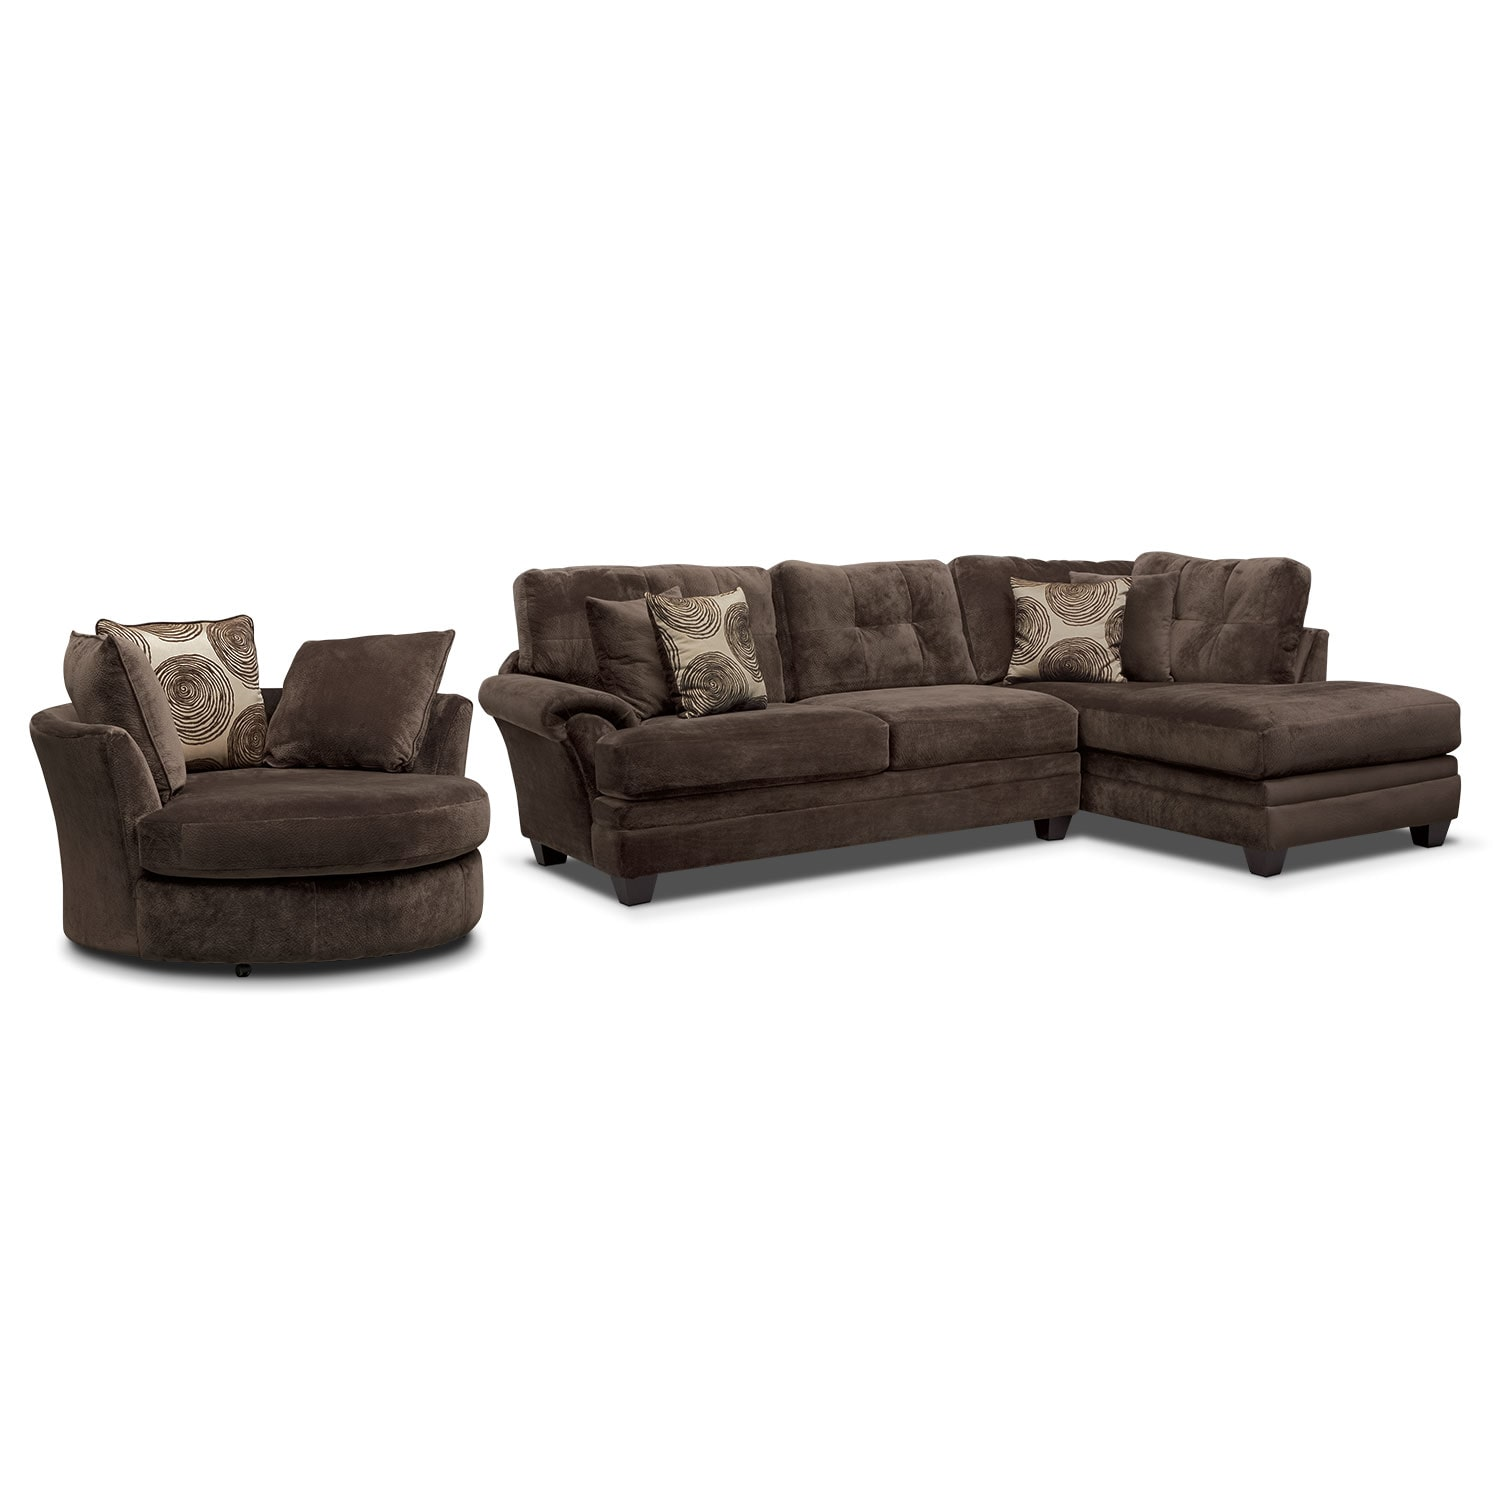 Cordelle 2 Piece Right Facing Chaise Sectional And Swivel